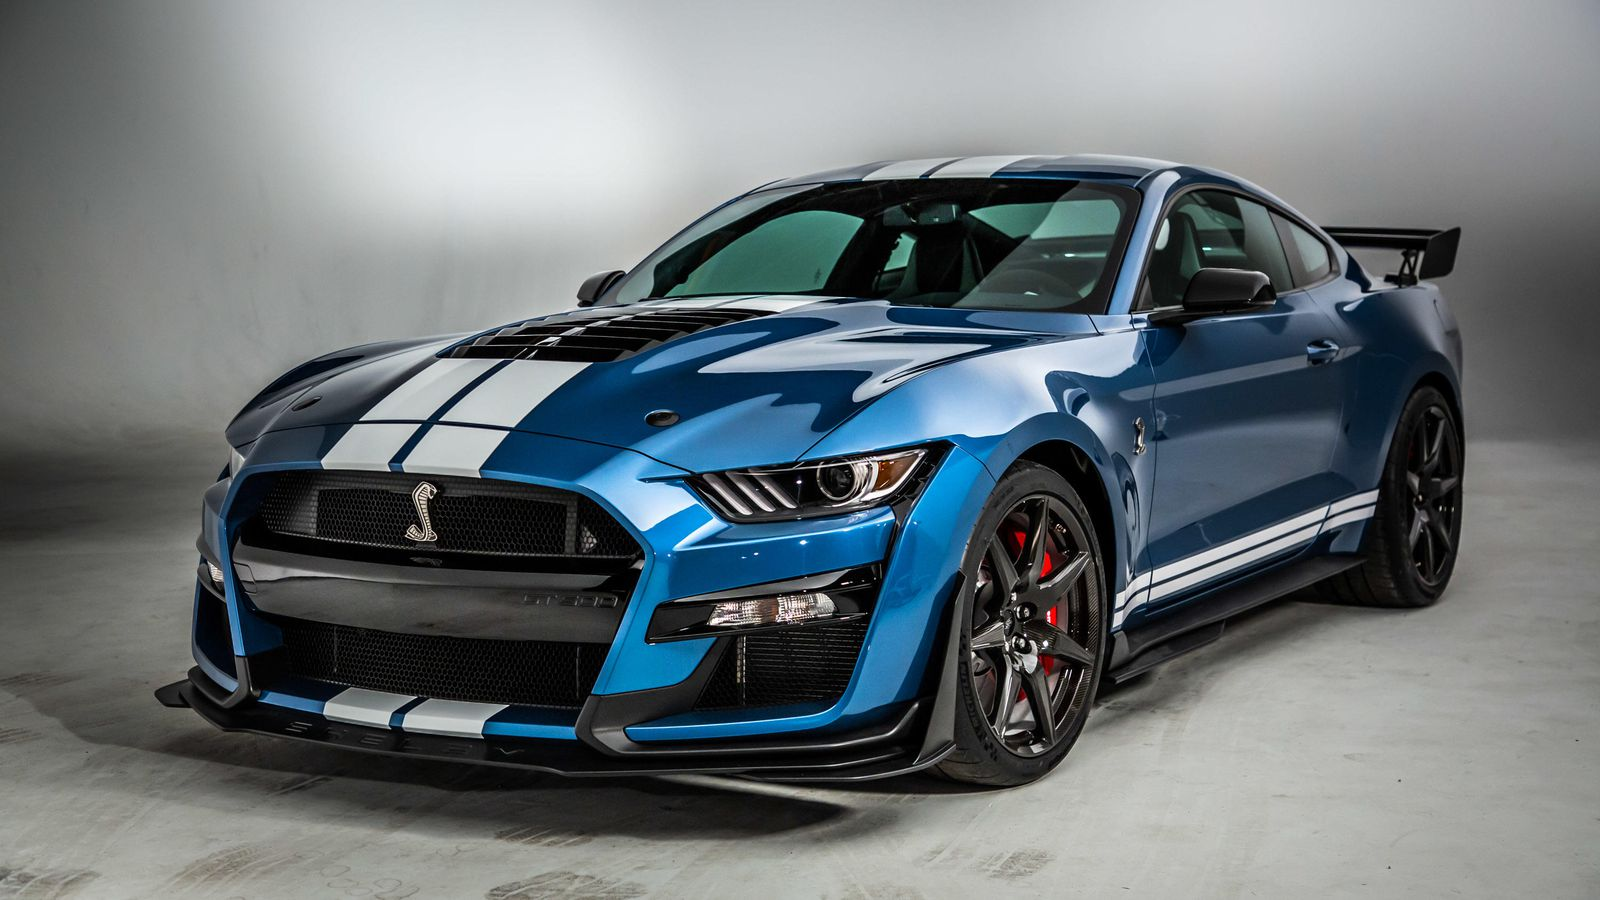 54 The Best 2019 Ford Mustang Shelby Gt500 Configurations